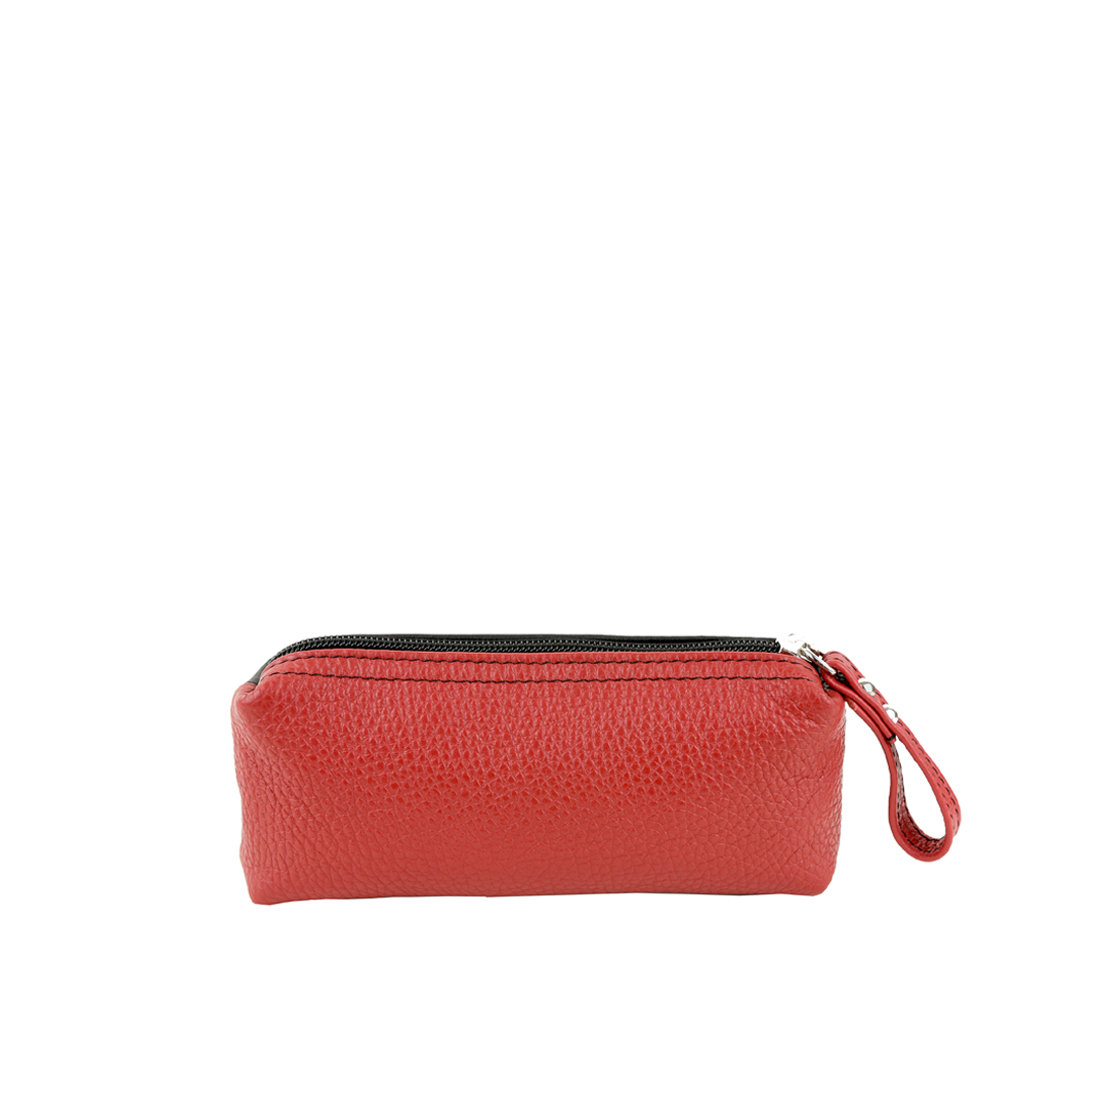 Make Up Bag in Red